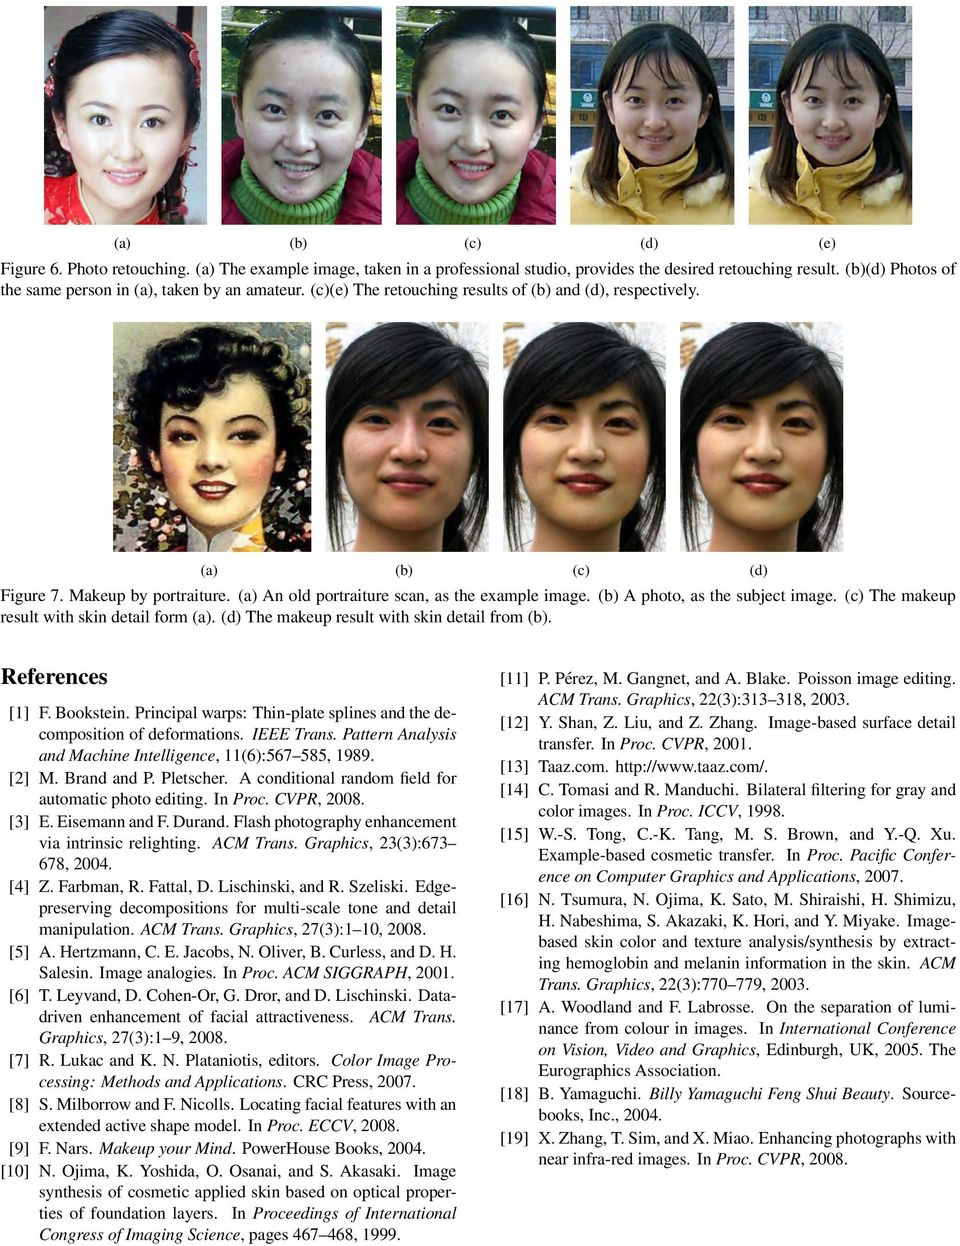 (a) An old portraiture scan, as the example image. (b) A photo, as the subject image. (c) The makeup result with skin detail form (a). (d) The makeup result with skin detail from (b).